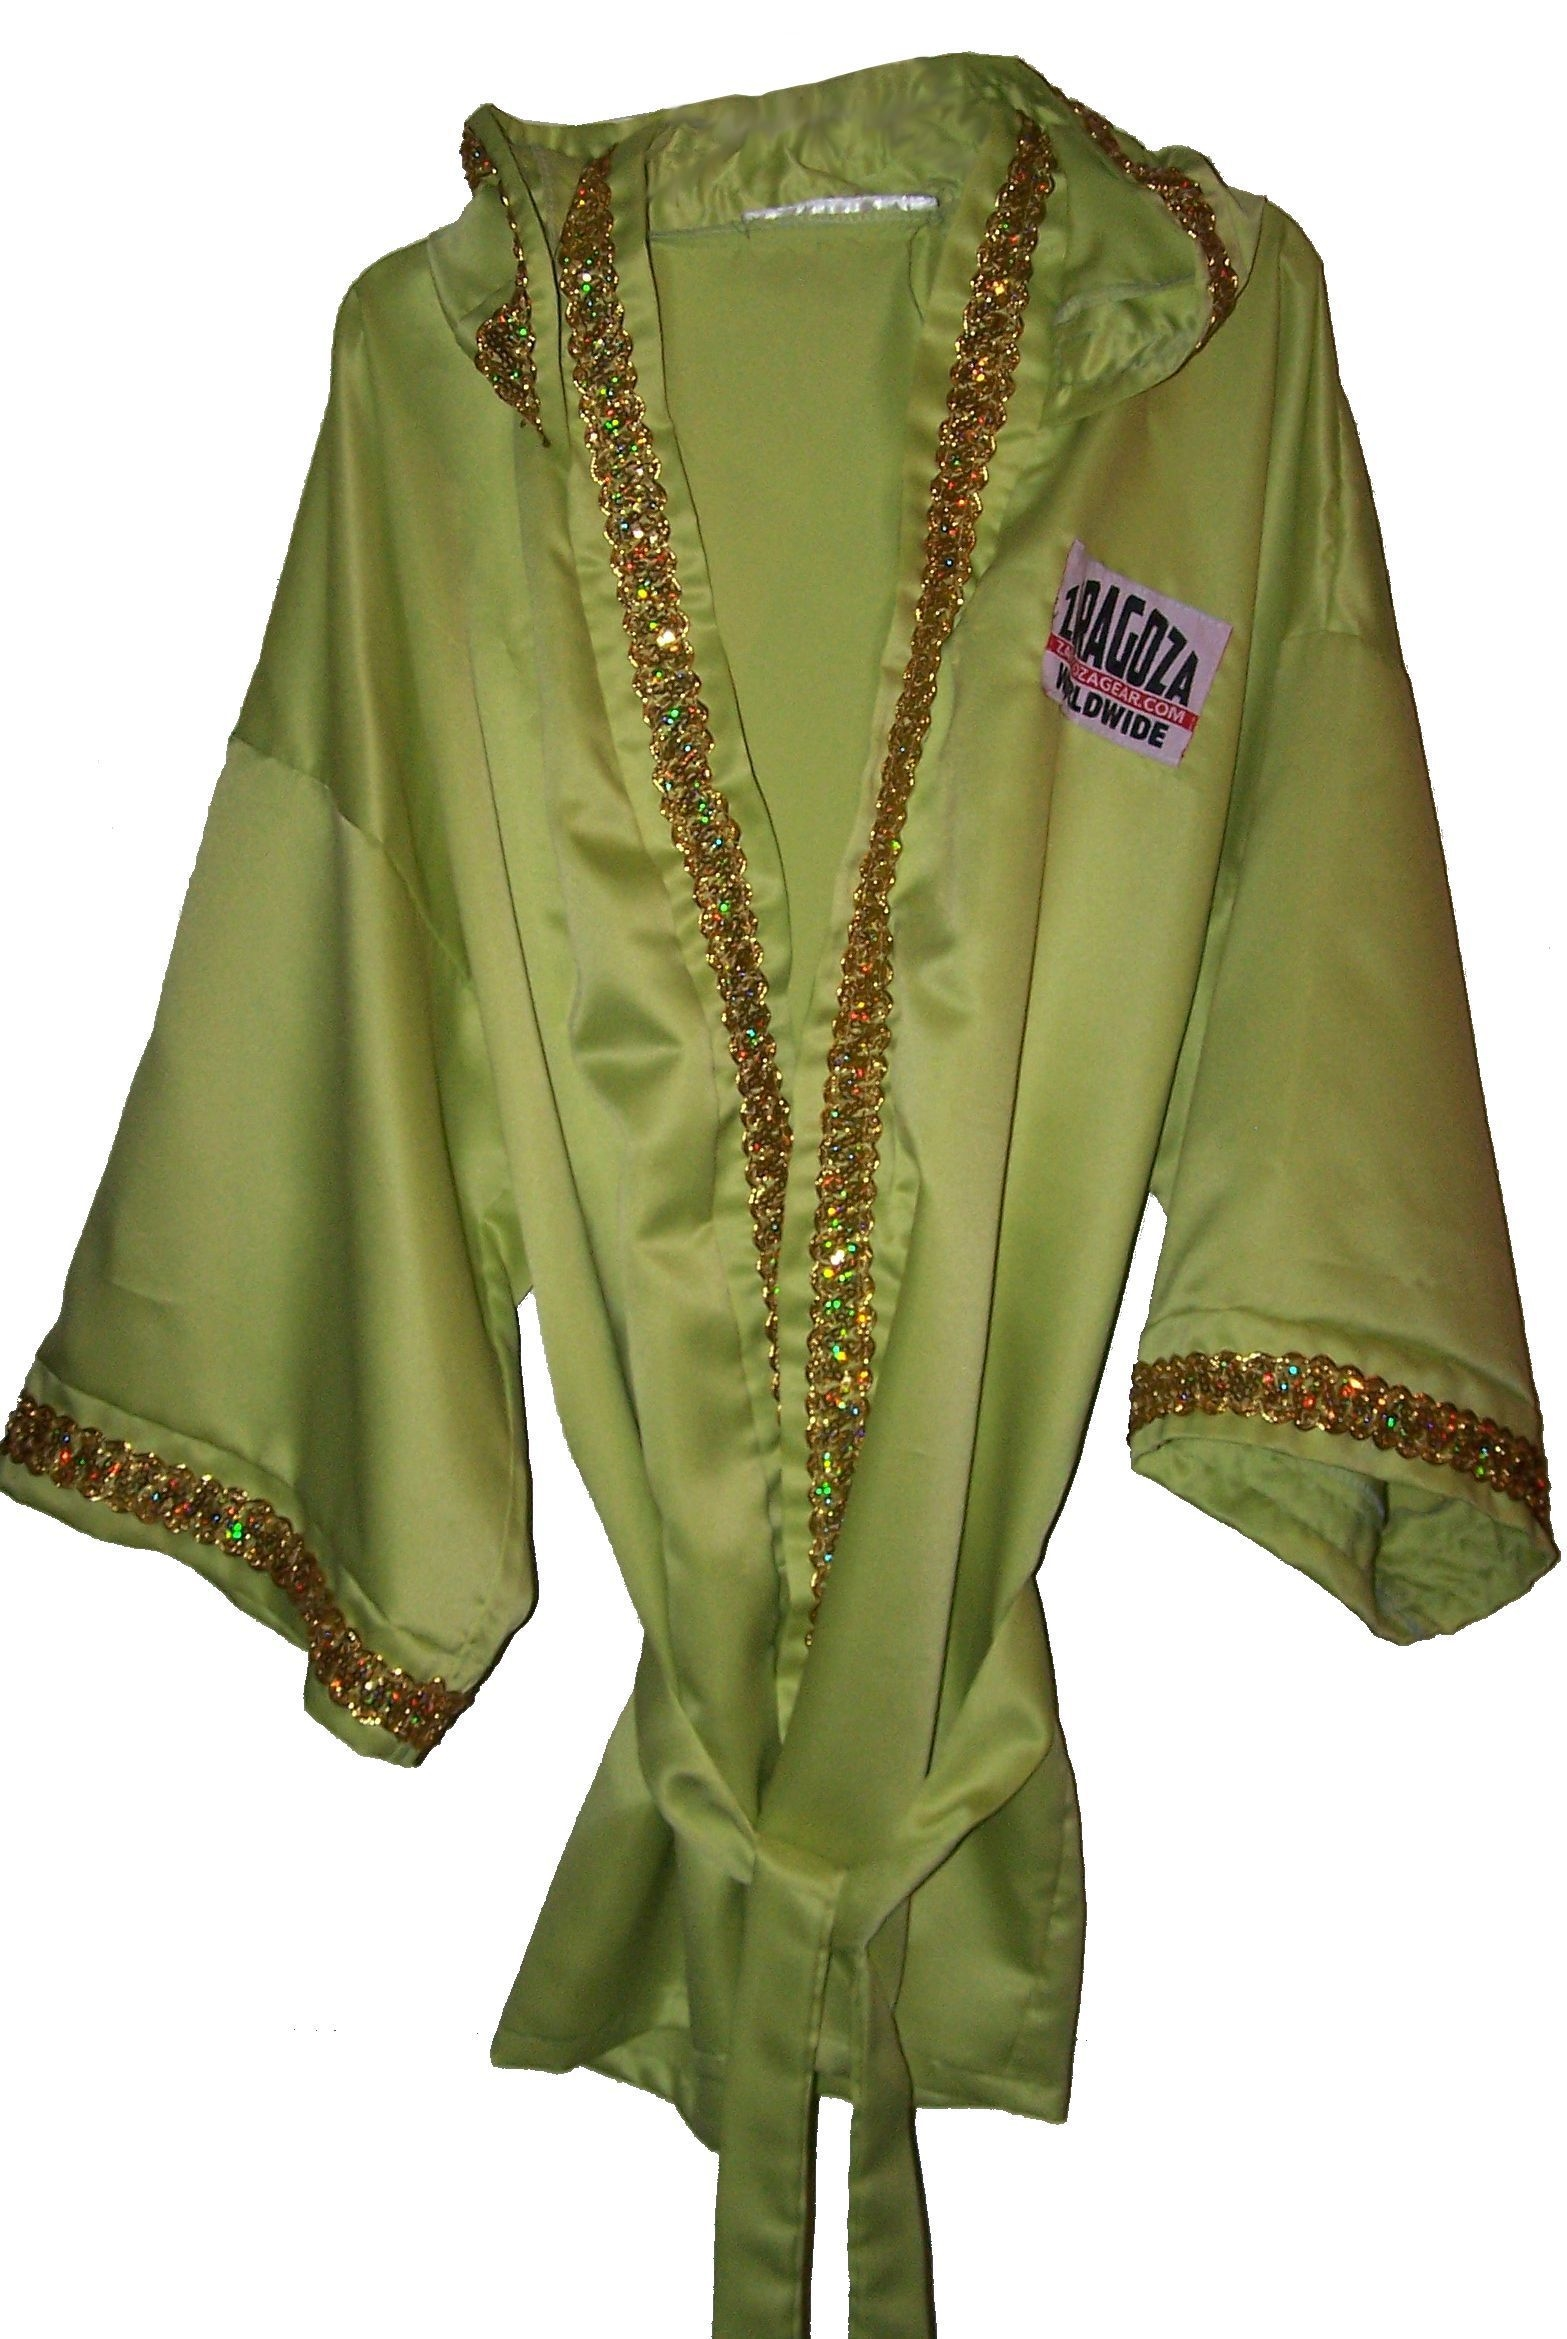 Zaragoza Gear Custom Robes, starting at $340.00